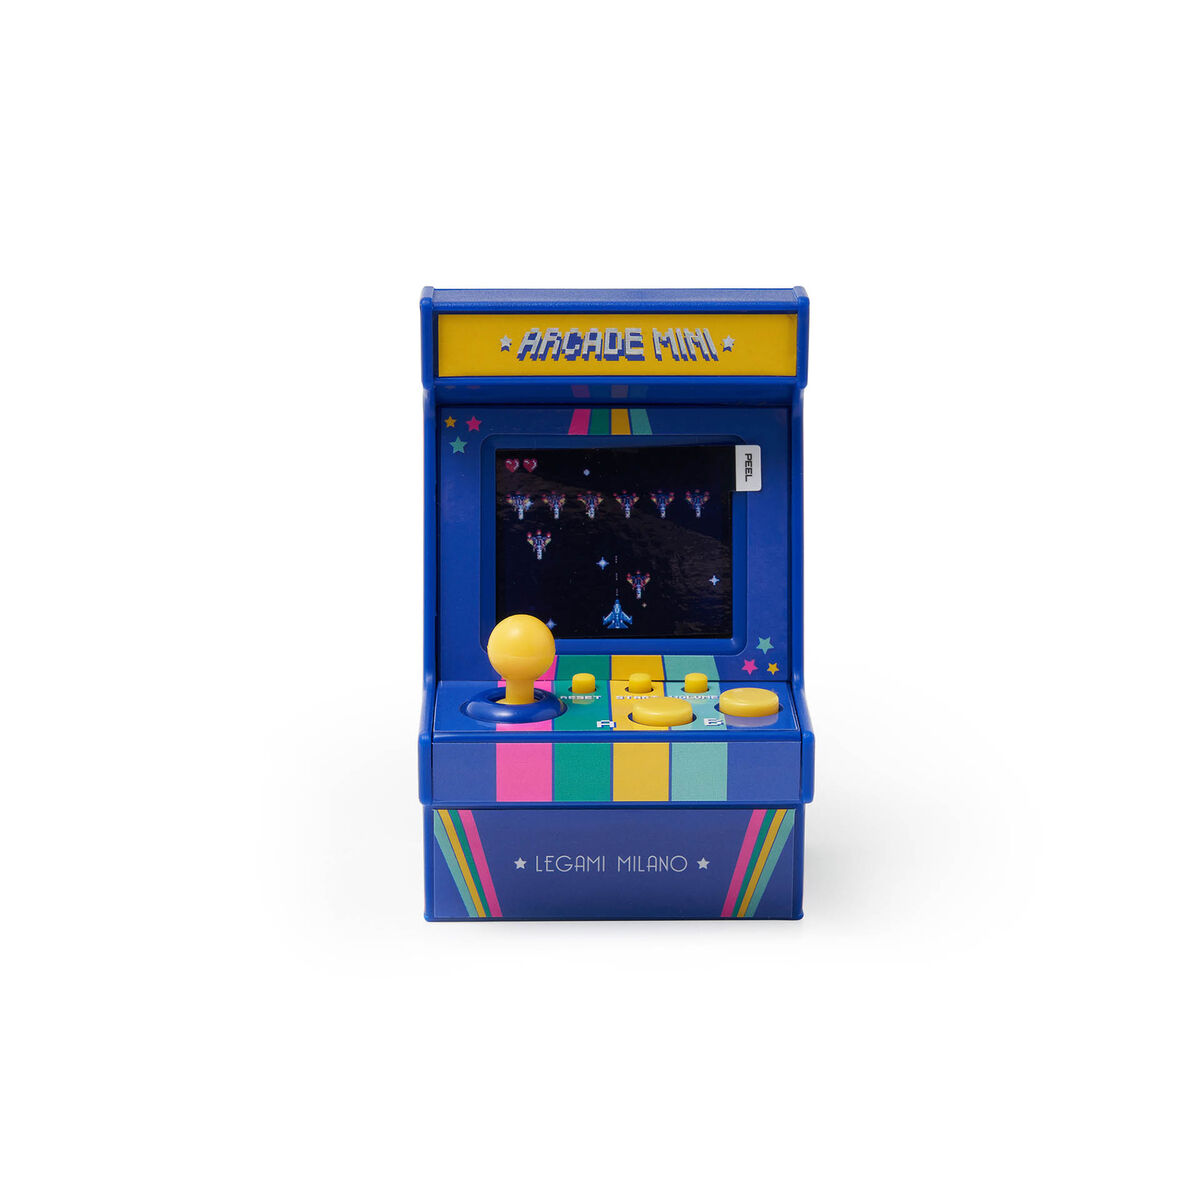 Arcade Mini - Mini Arcade Game, , zoo